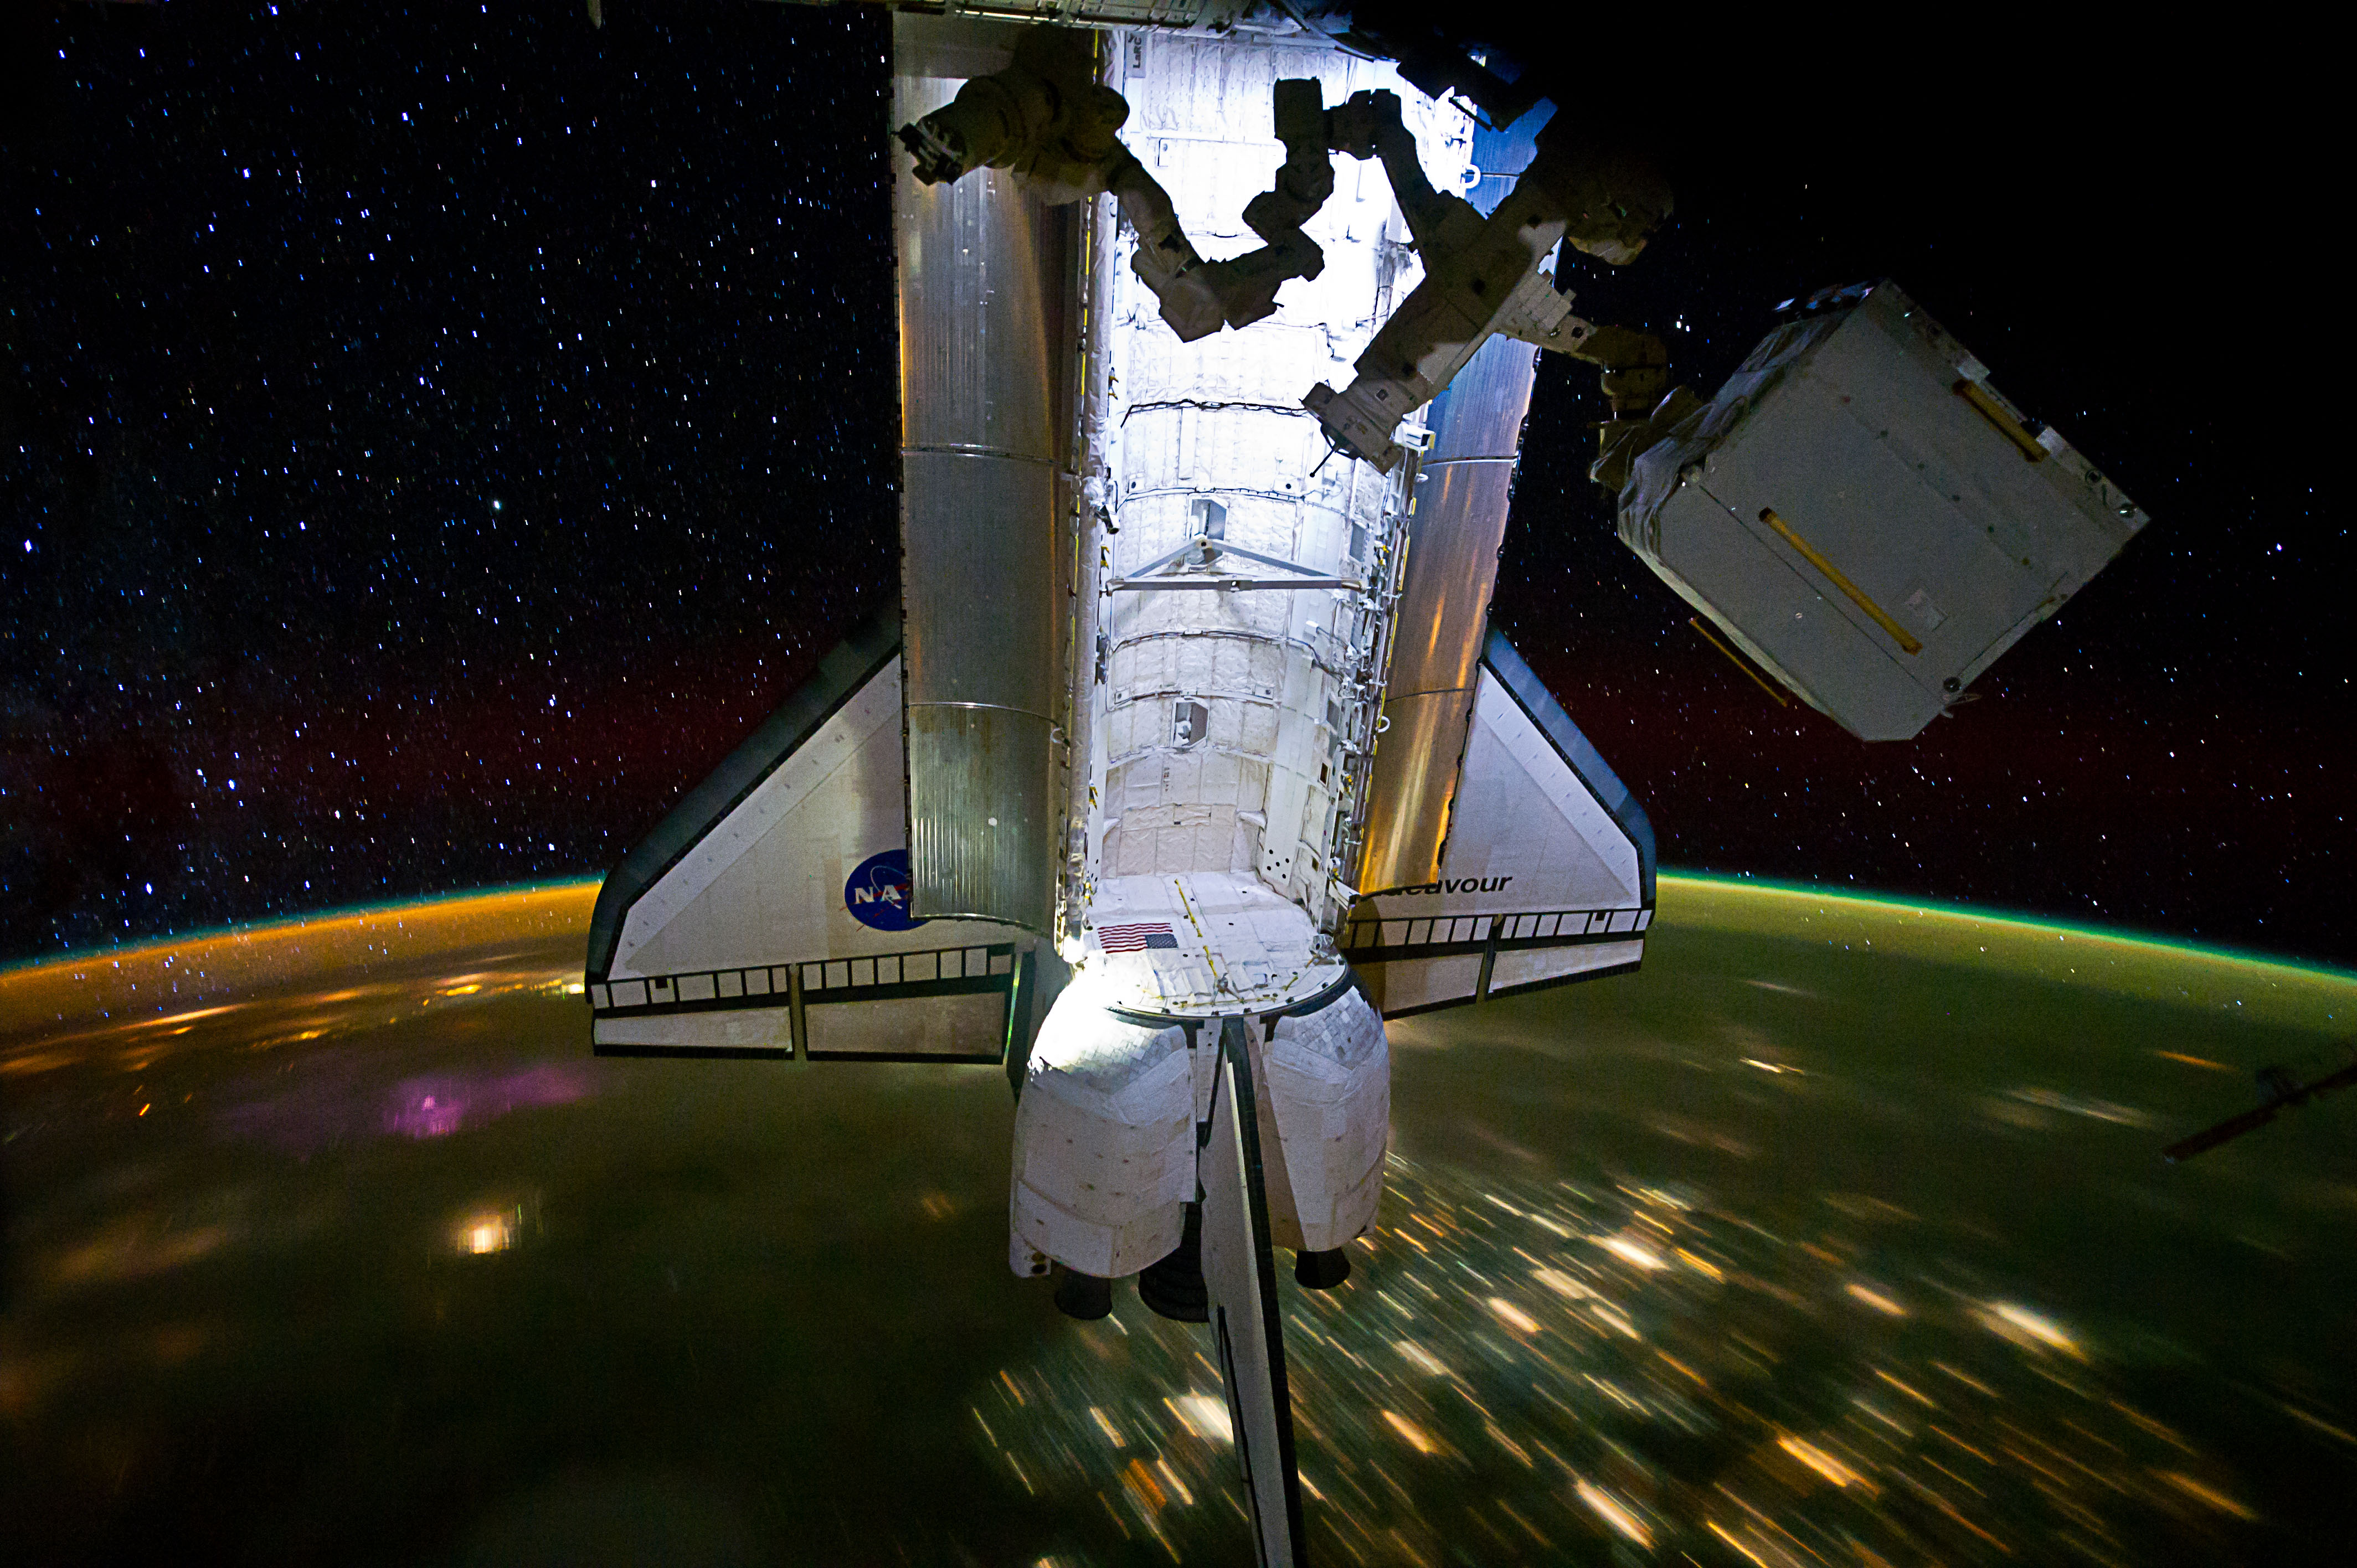 space shuttle iss - photo #37